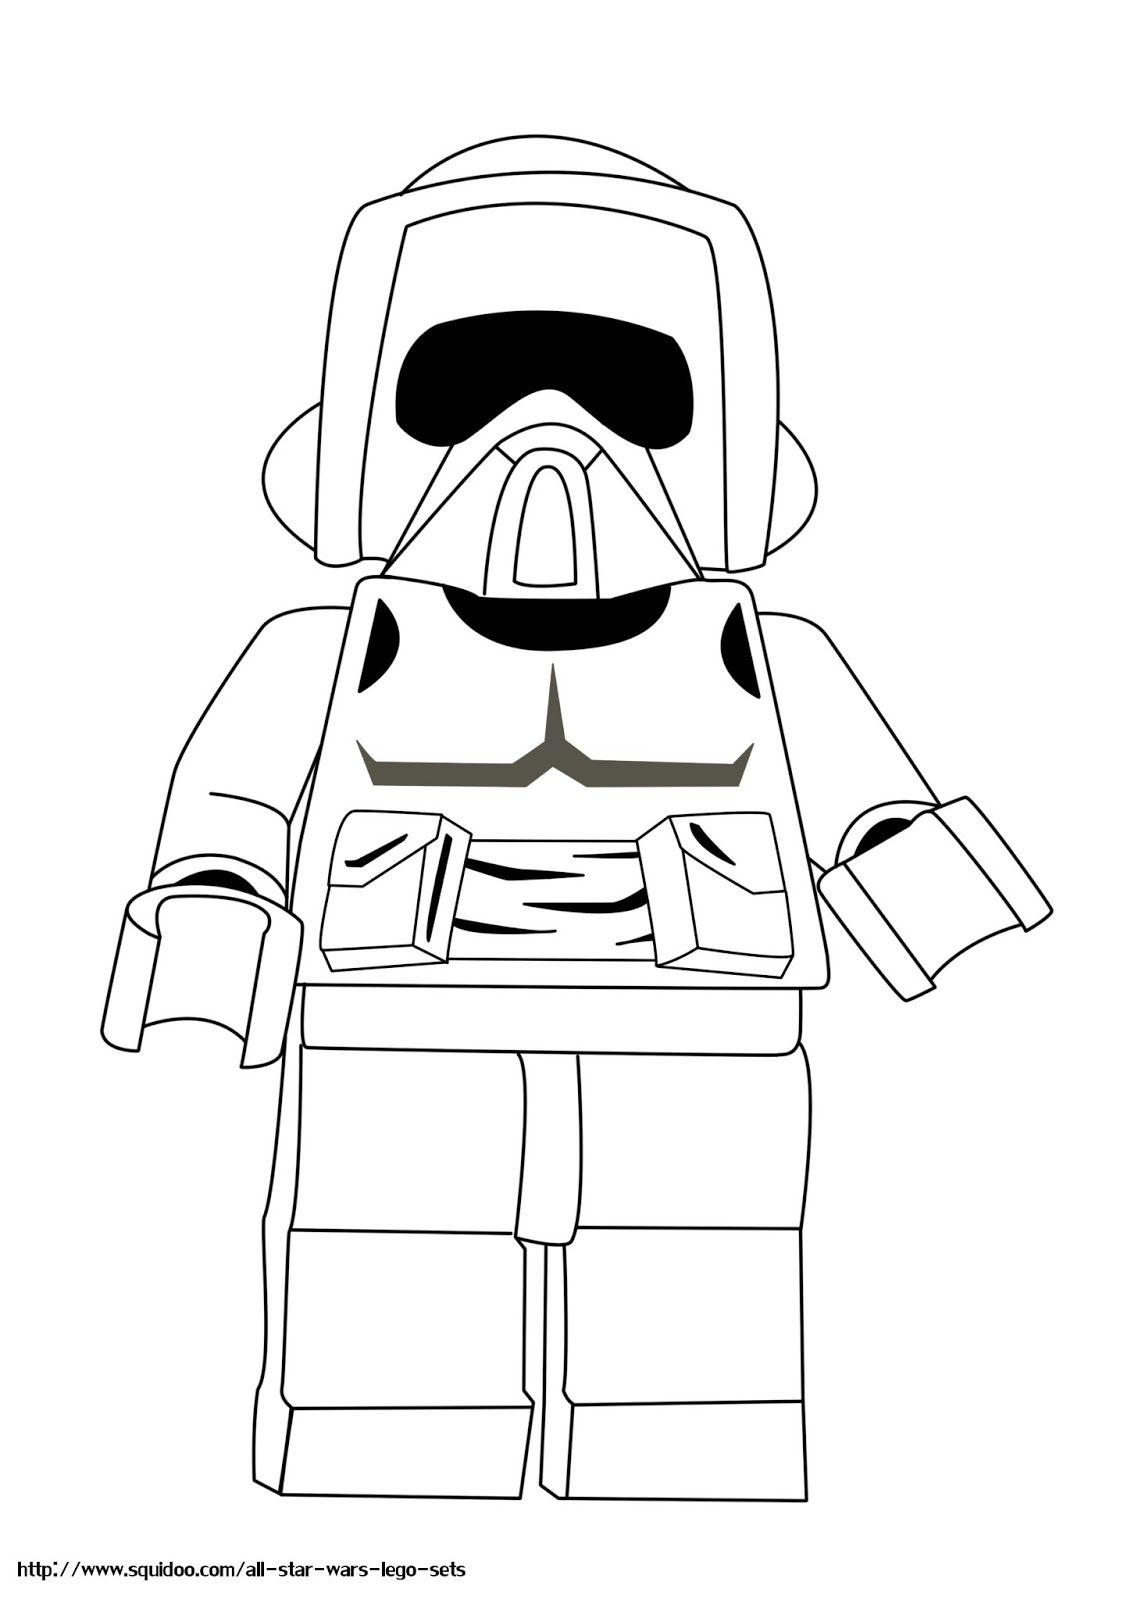 Lego Star Wars Printable Coloring Pages Lego Star Wars Coloring Pages Lego Coloring Pages Star Wars Colors Star Wars Coloring Book